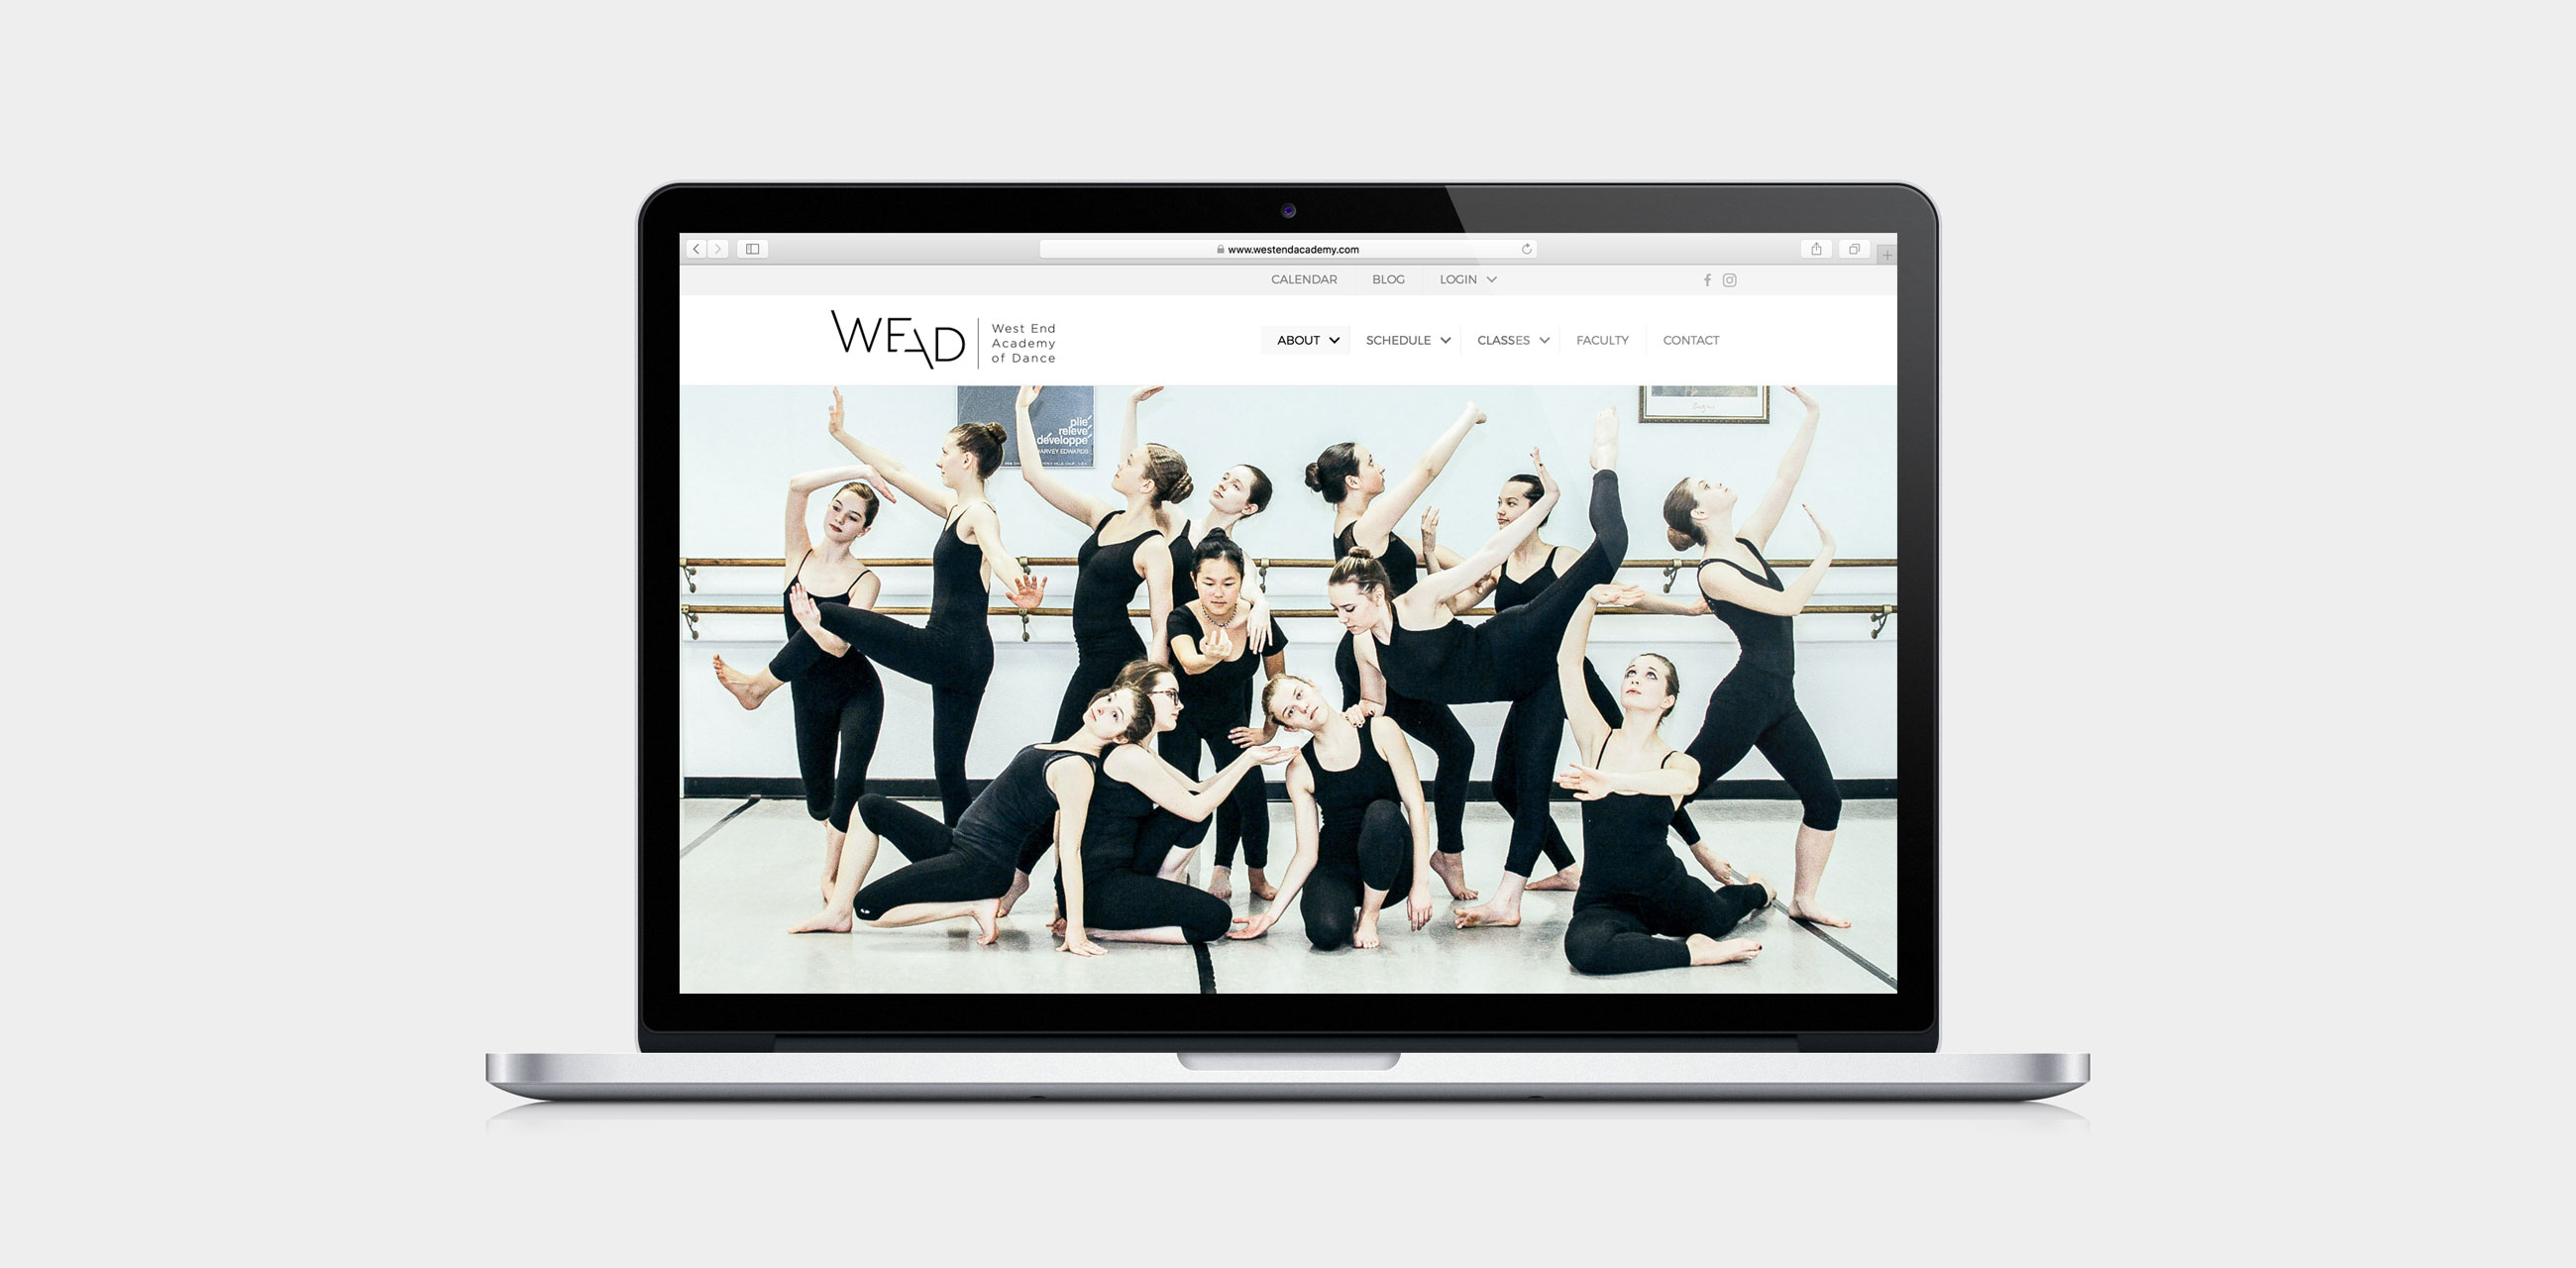 WEAD website on laptop